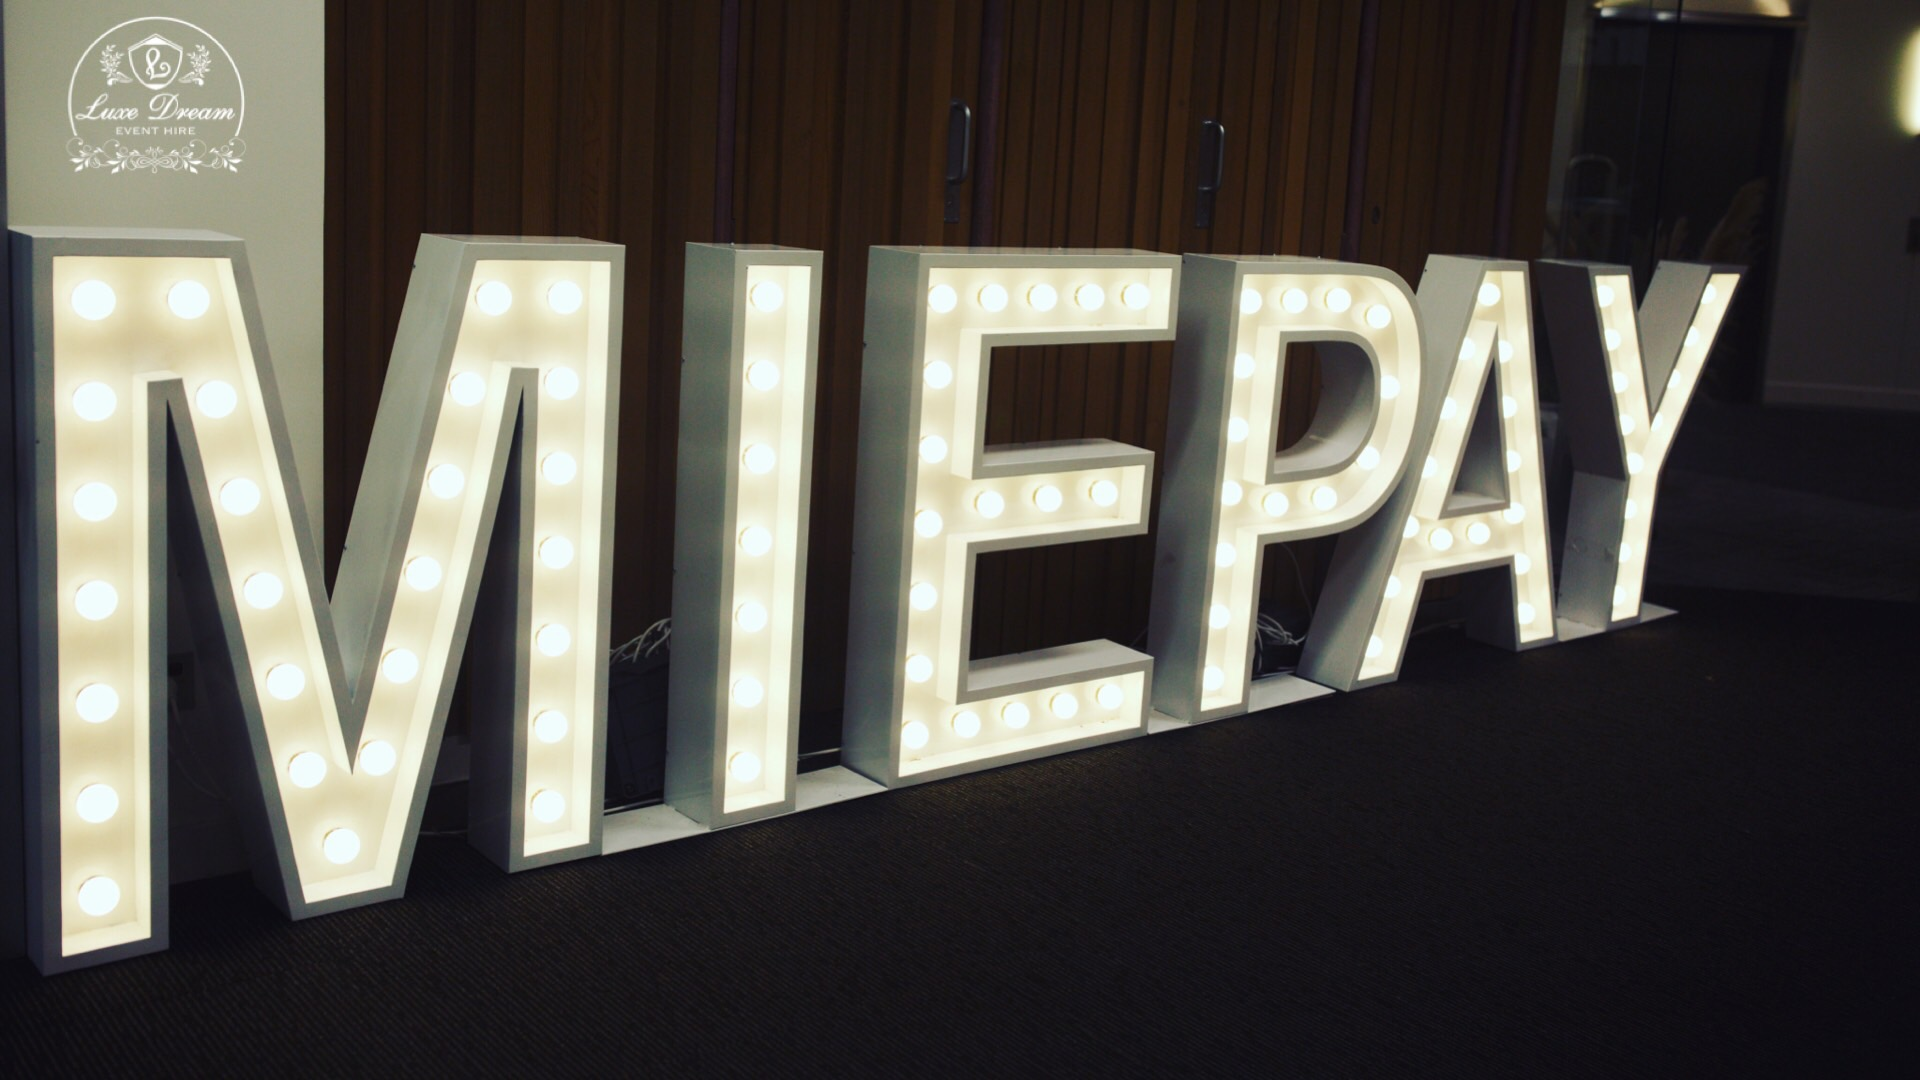 LED Letter Lights by Luxe Dream Event Hire